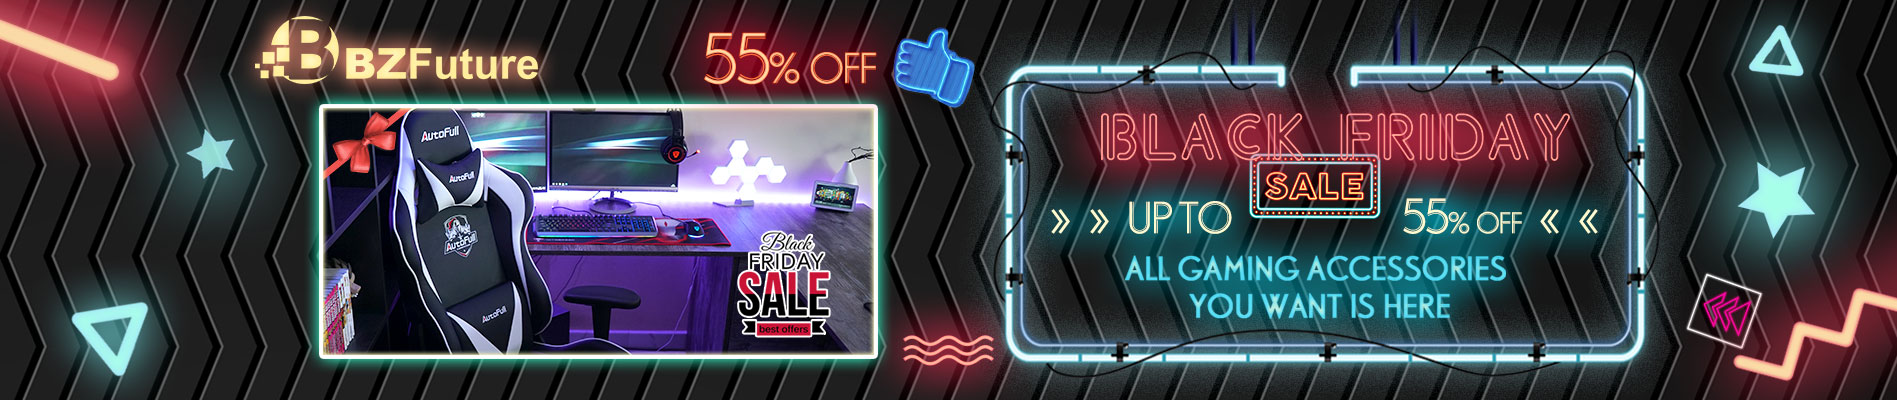 BZFuture blackfriday sale